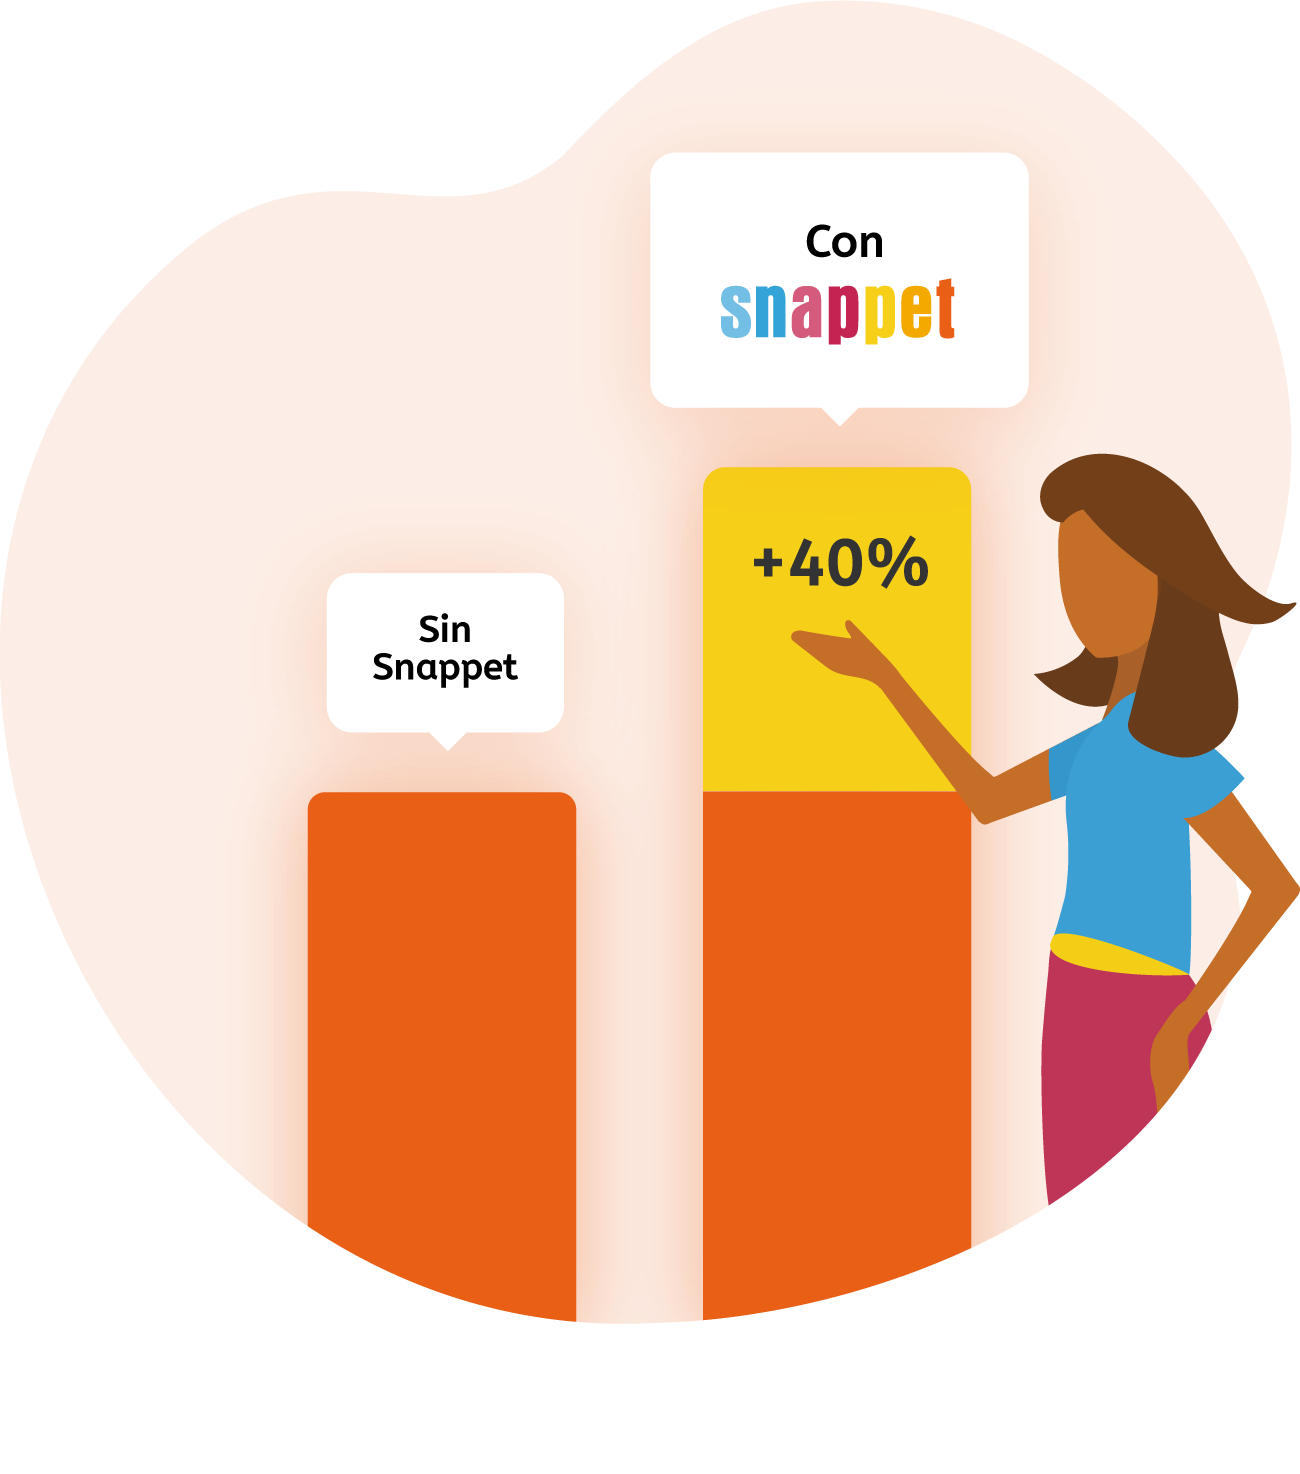 Snappet results